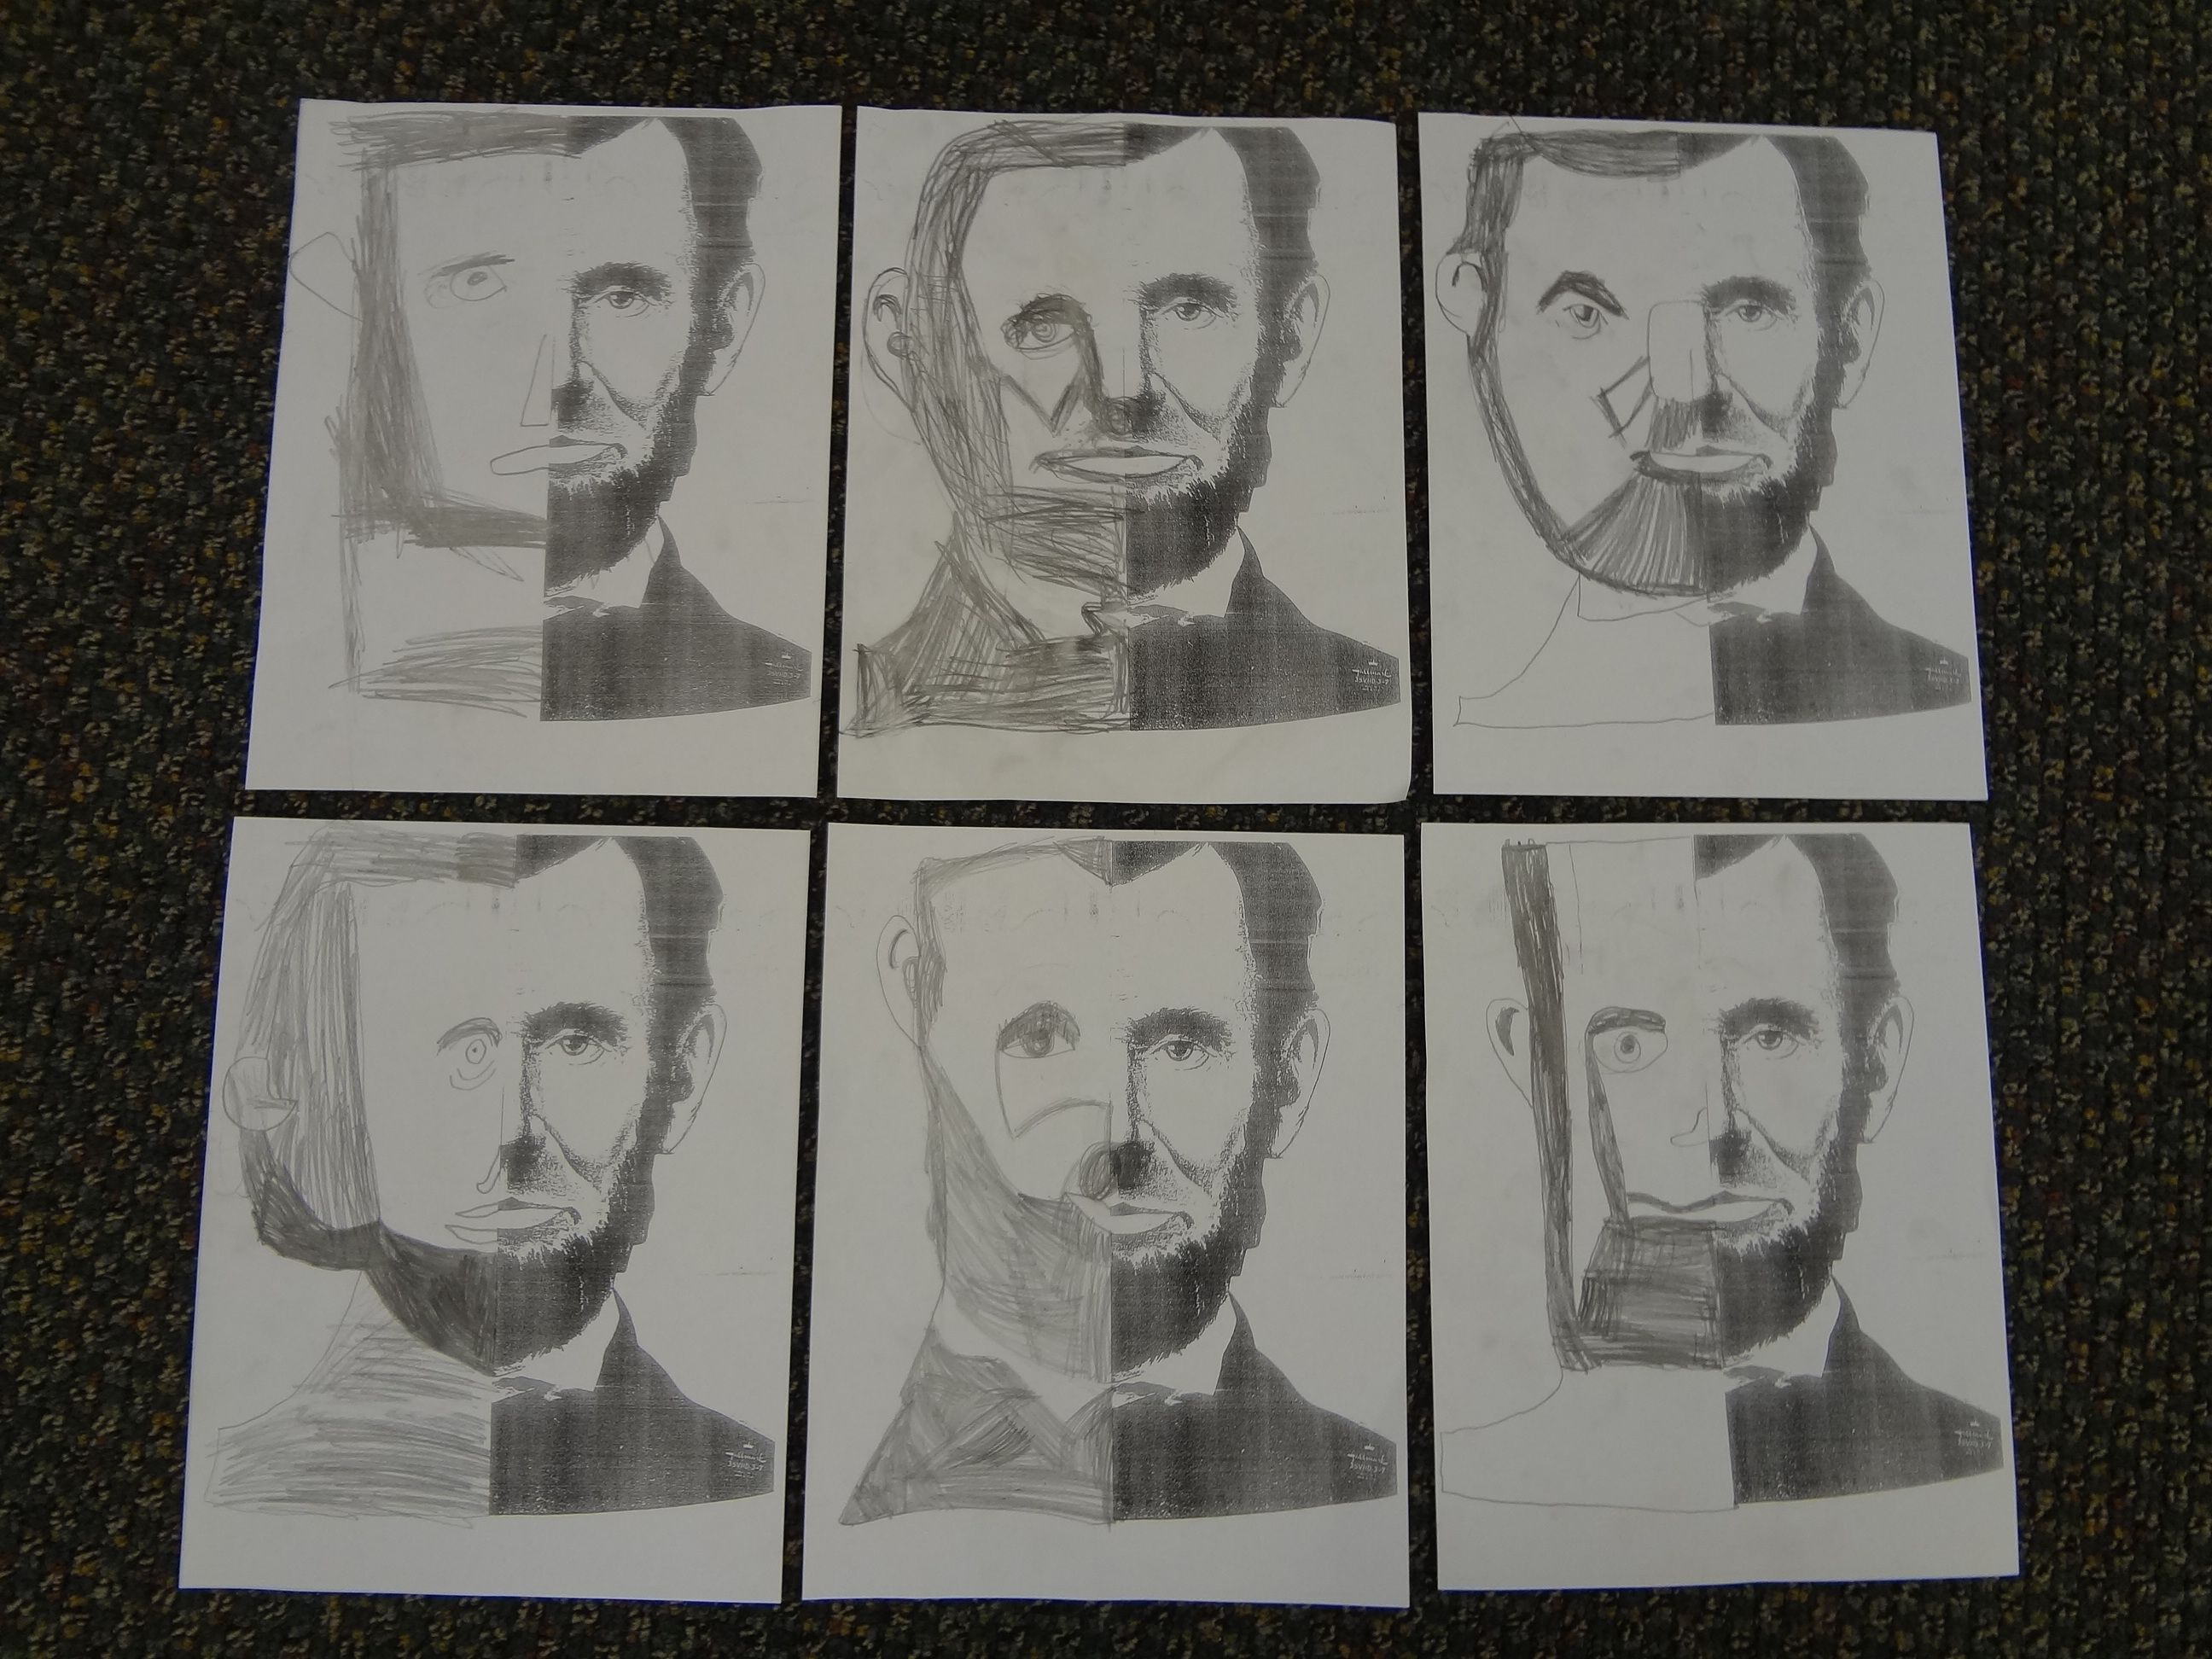 I Did This Cute Symmetry Activity With My Class Last Week Since We Are Talking About Presidents